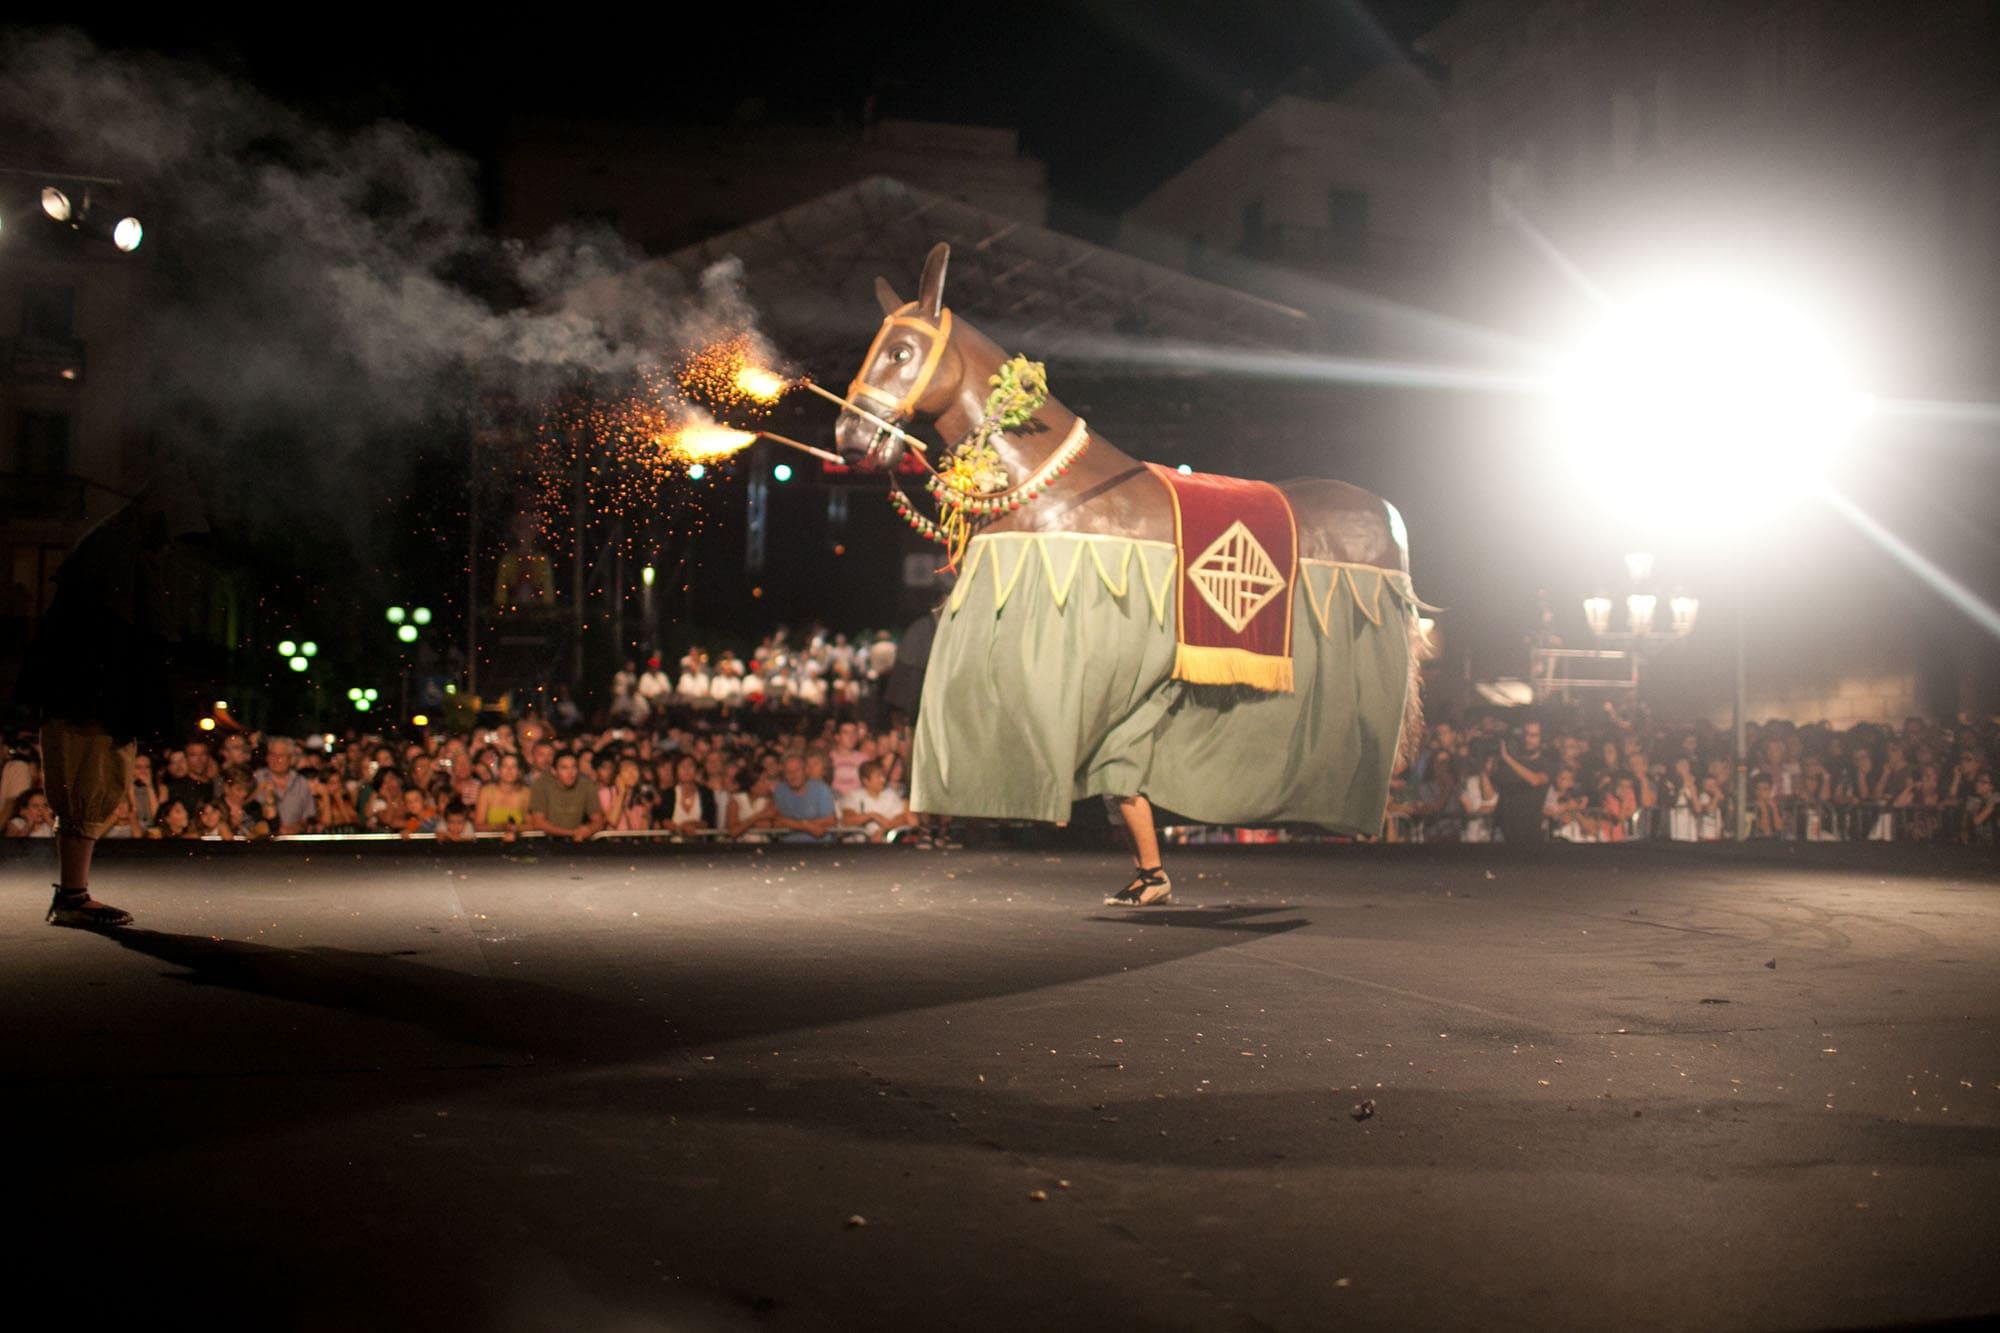 Fire horse at the Opening Ceremony of La Mercè 2011 in Barcelona, Spain